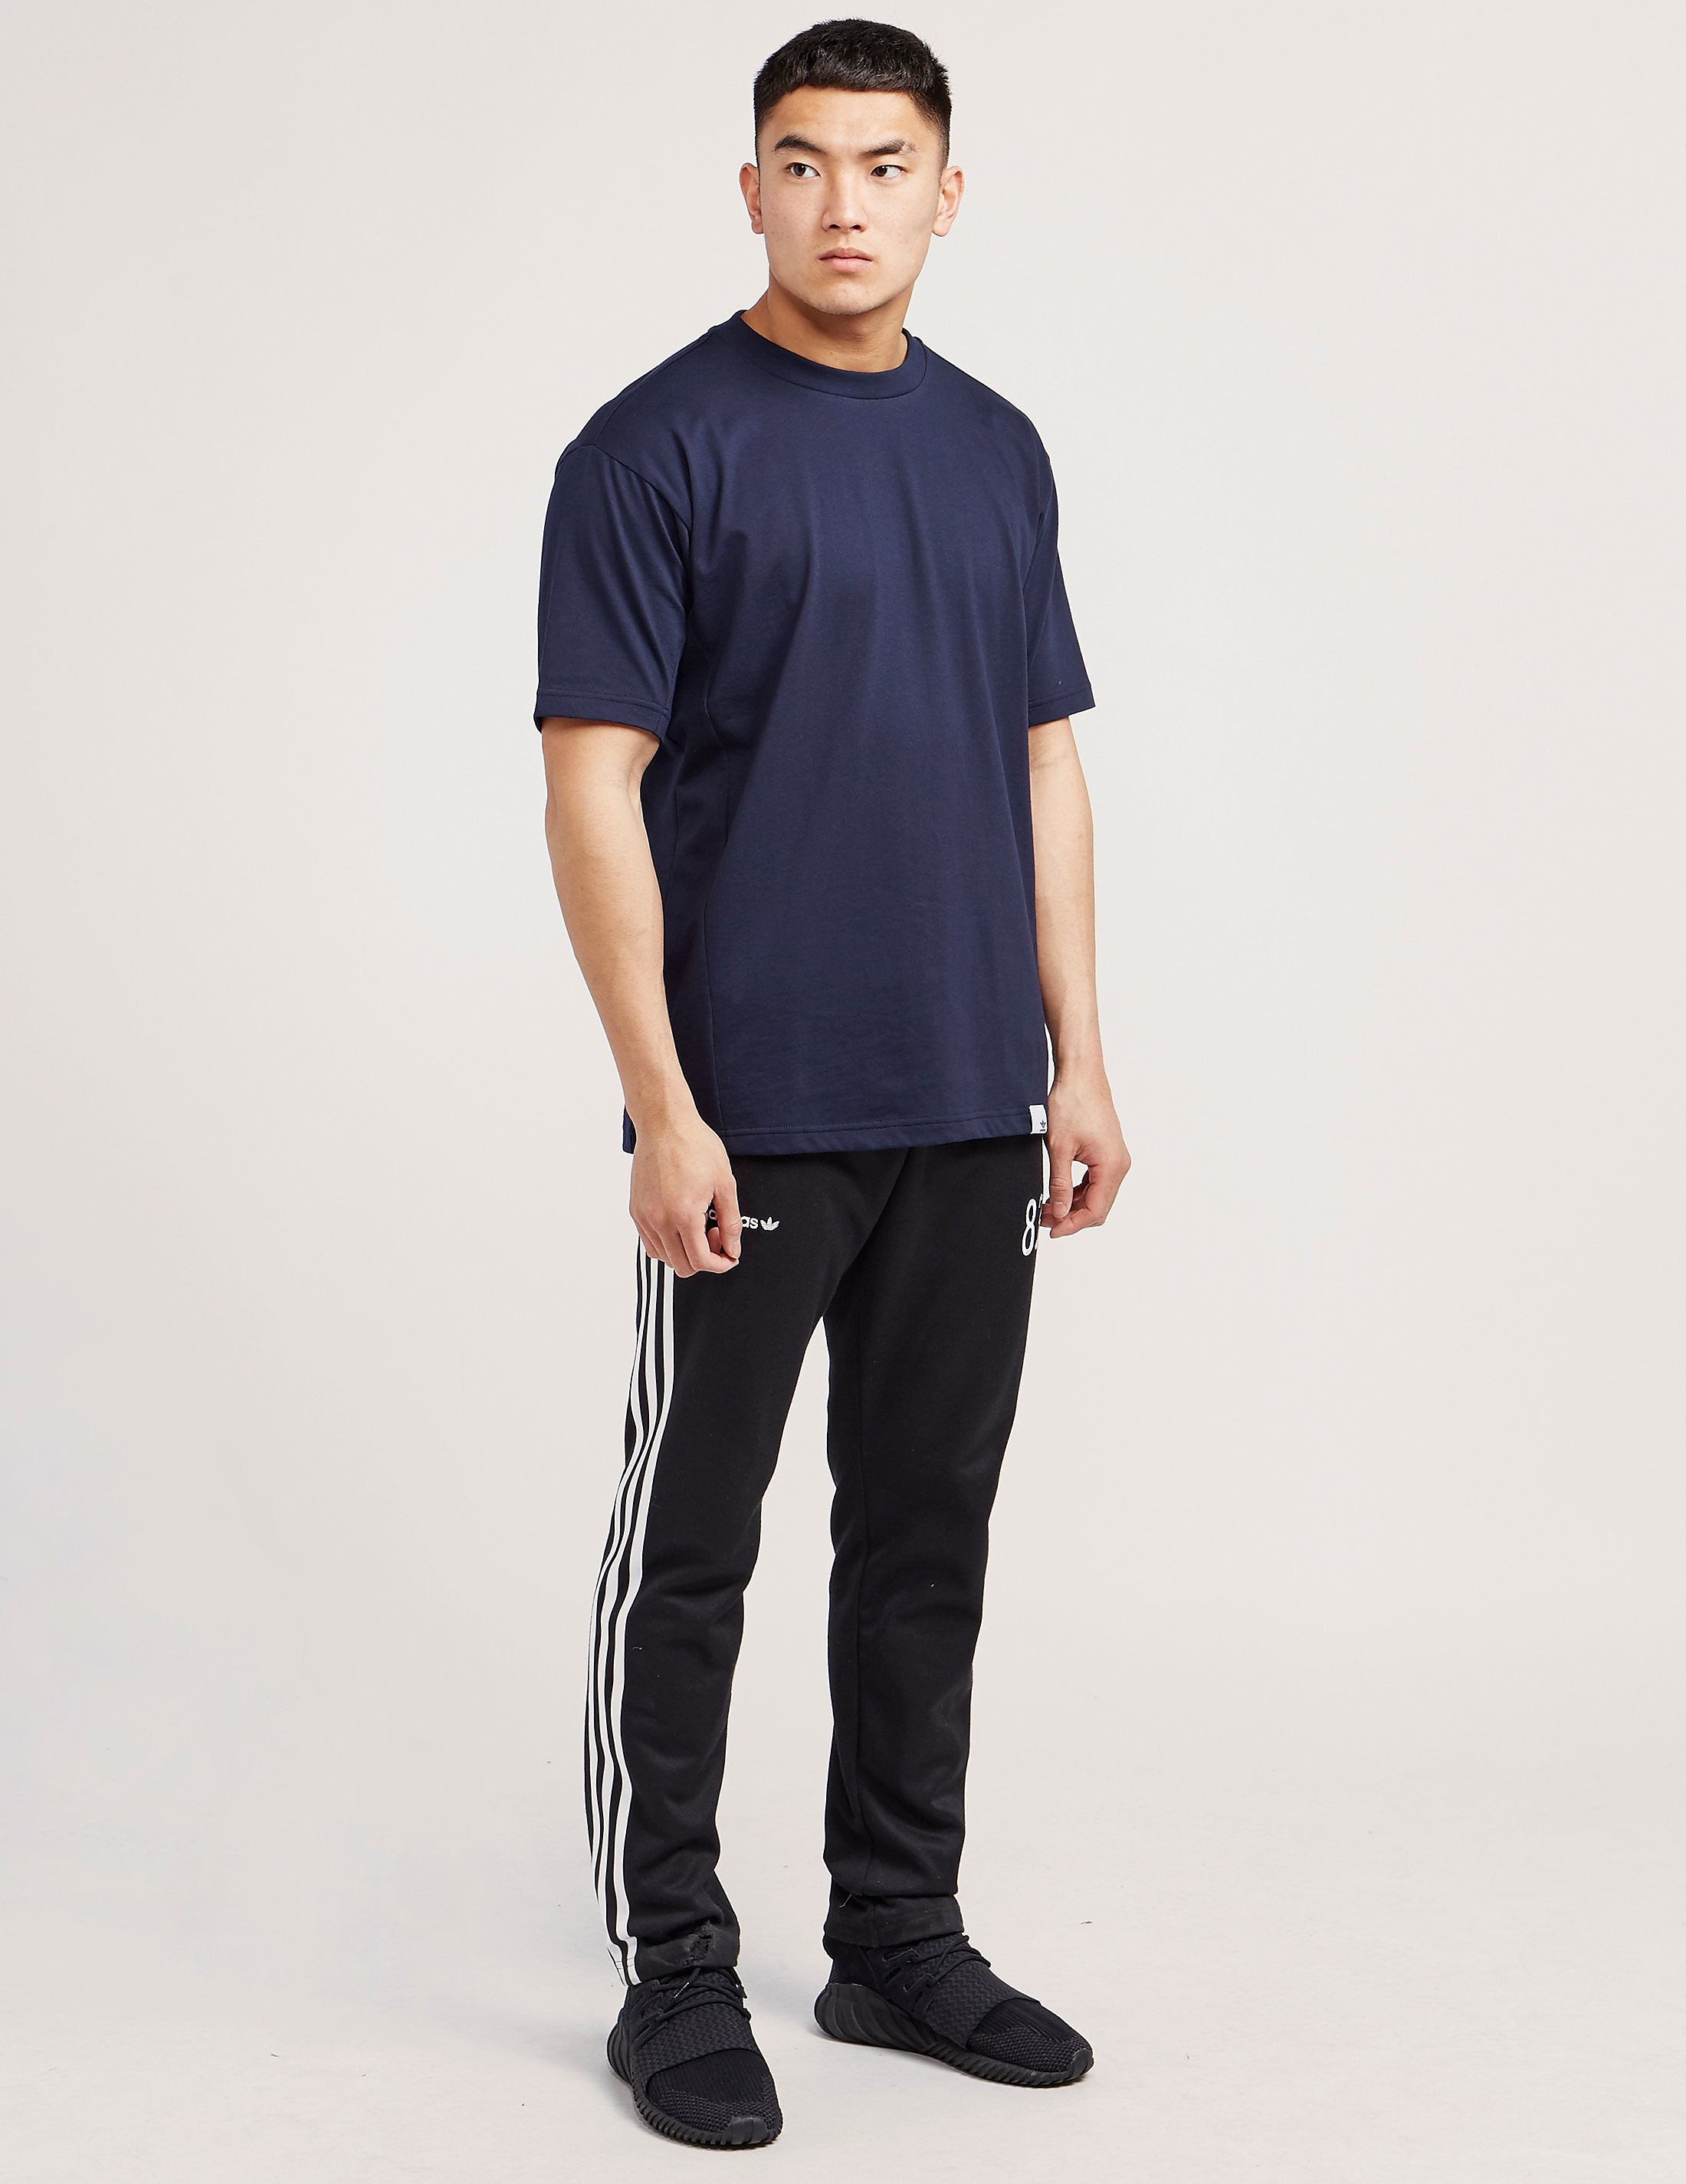 adidas Originals XBYO Crew T-Shirt